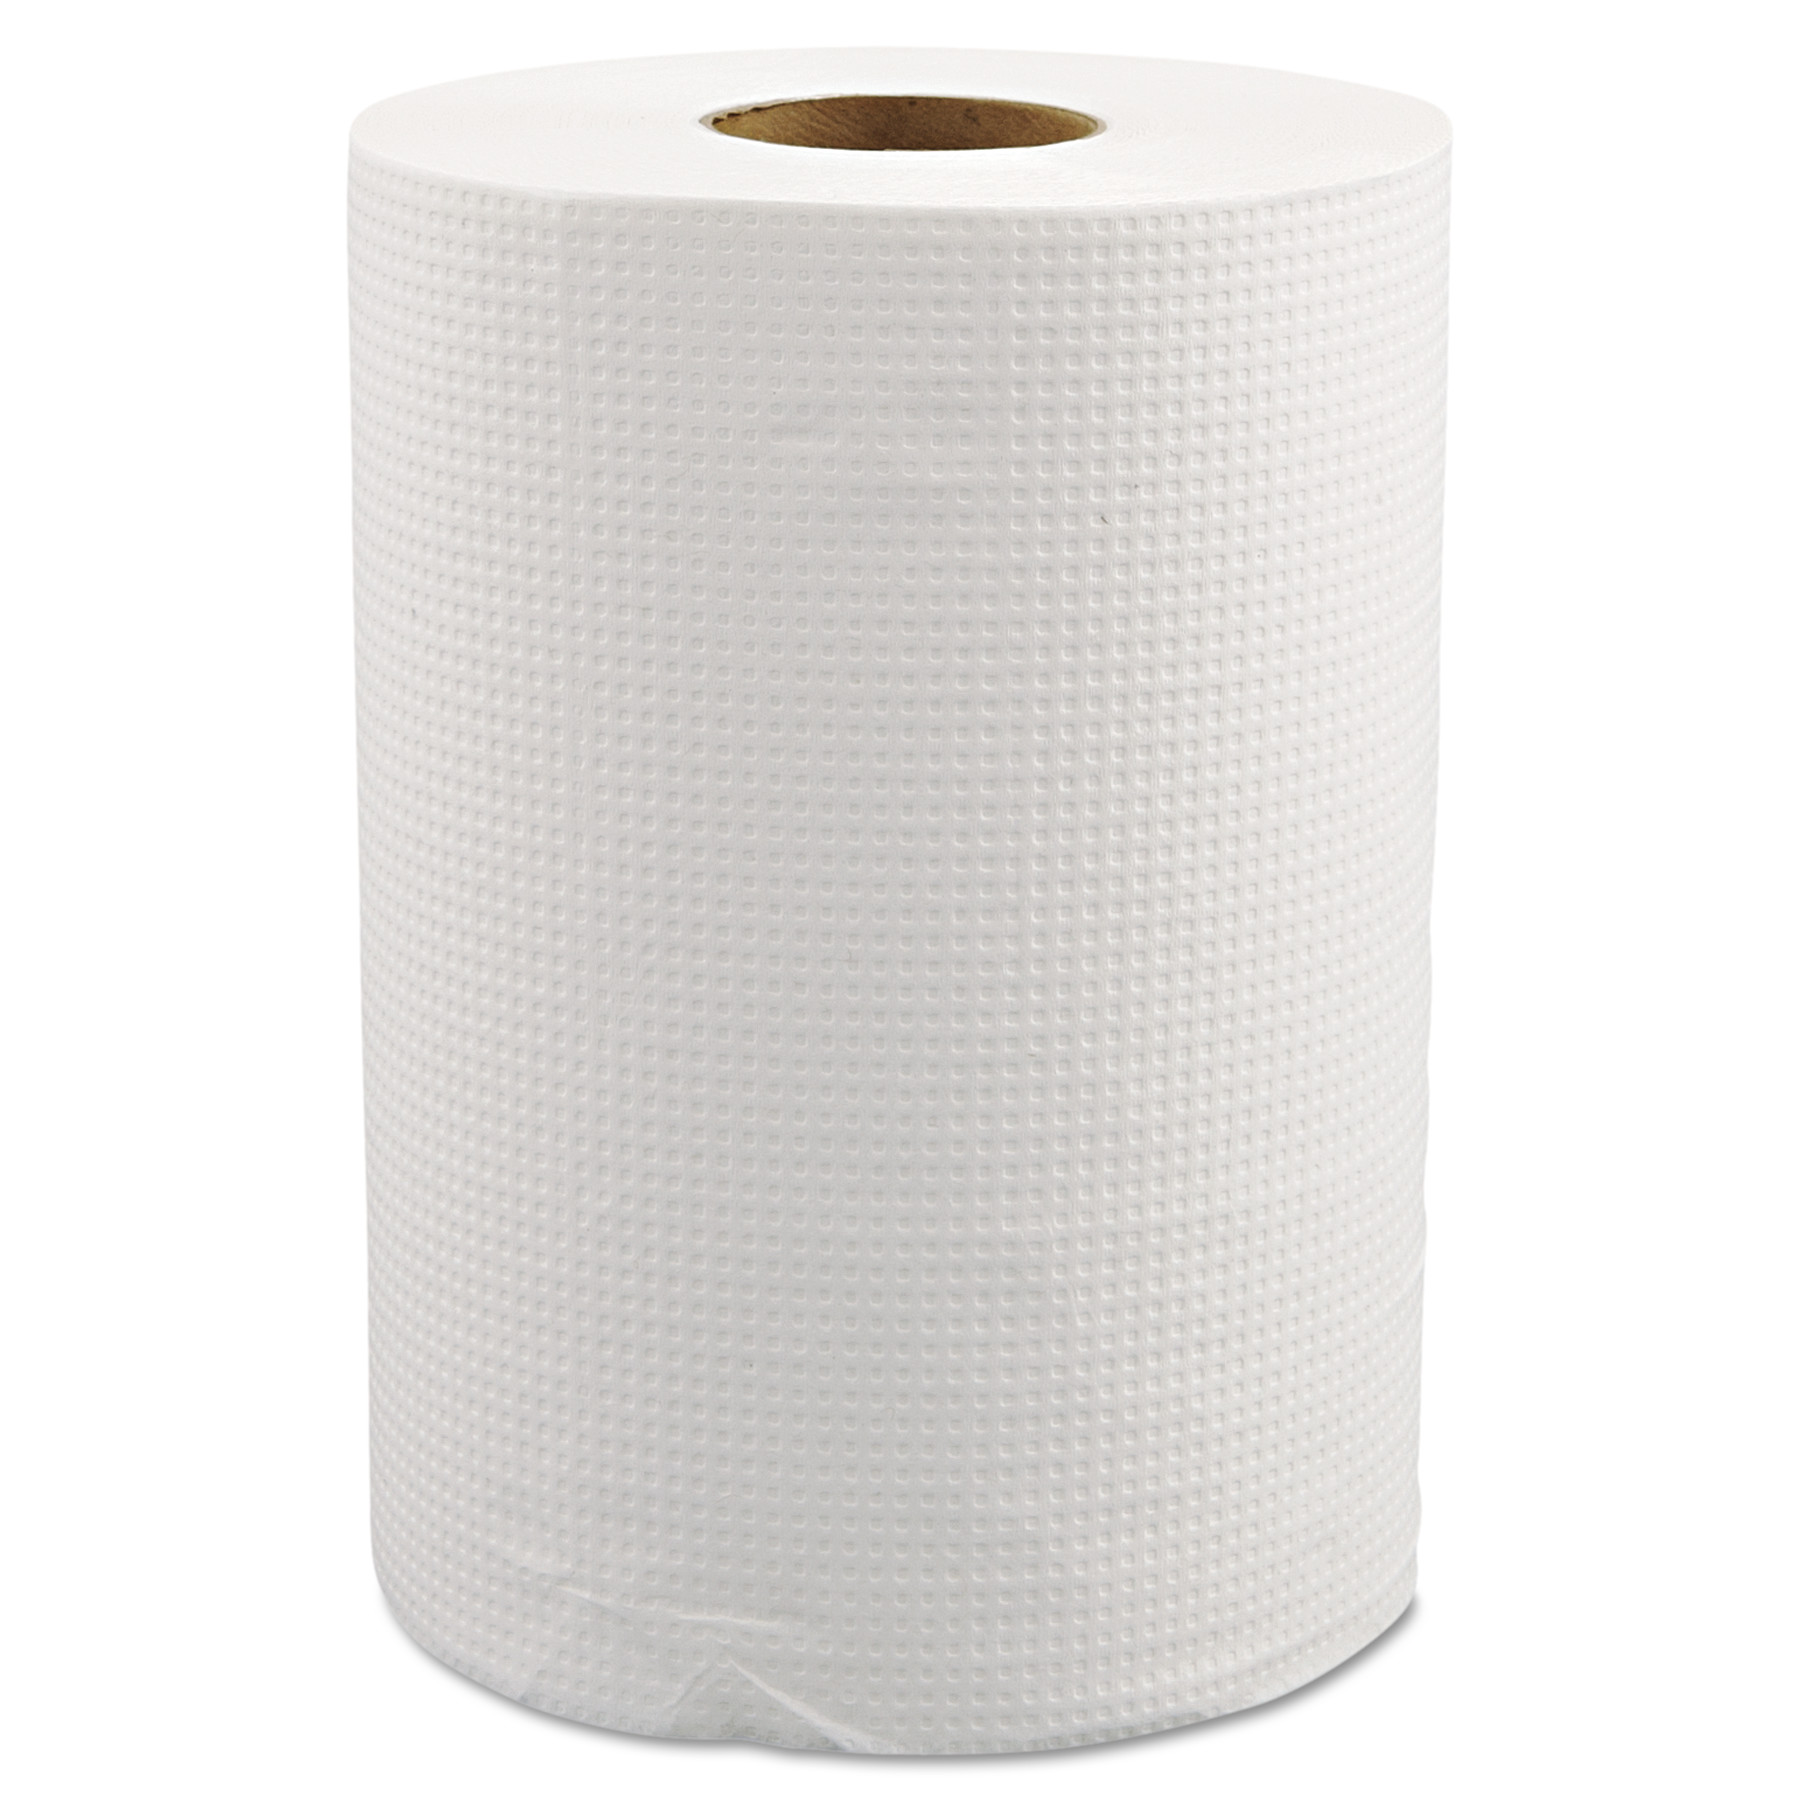 Morcon Paper Hardwound Roll Towels, White, 12 rolls